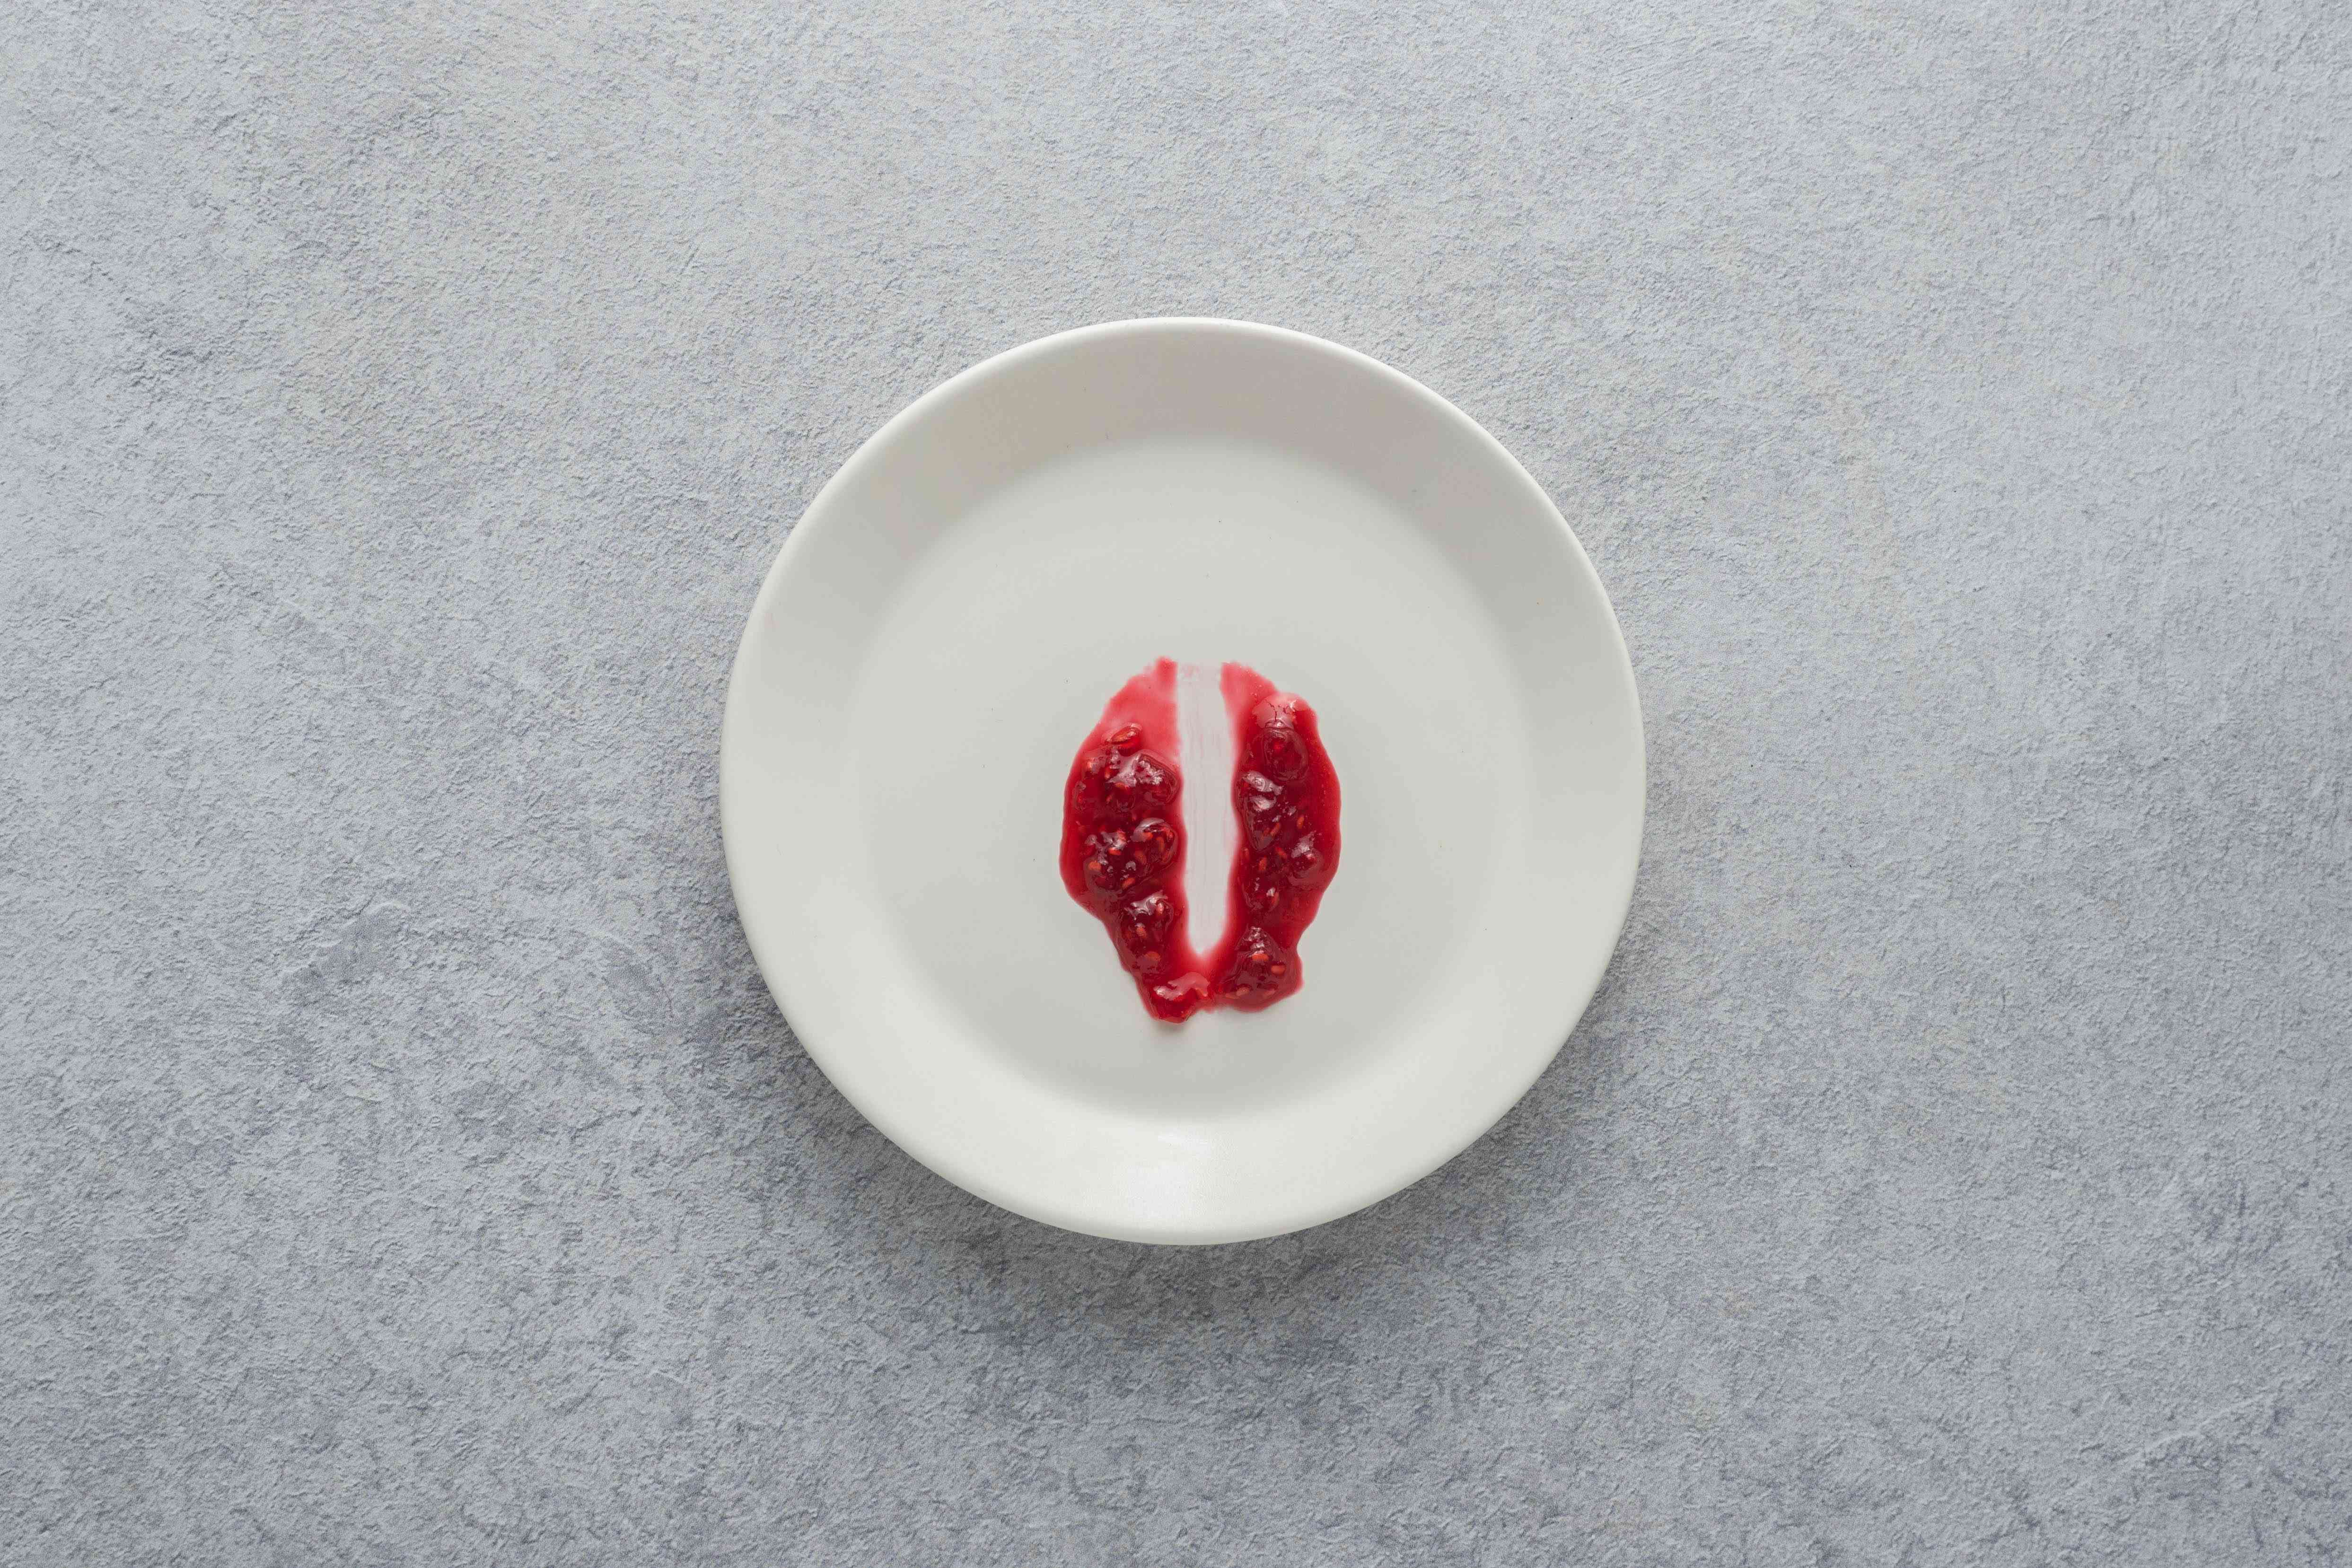 Jam on a chilled plate to test whether it has set